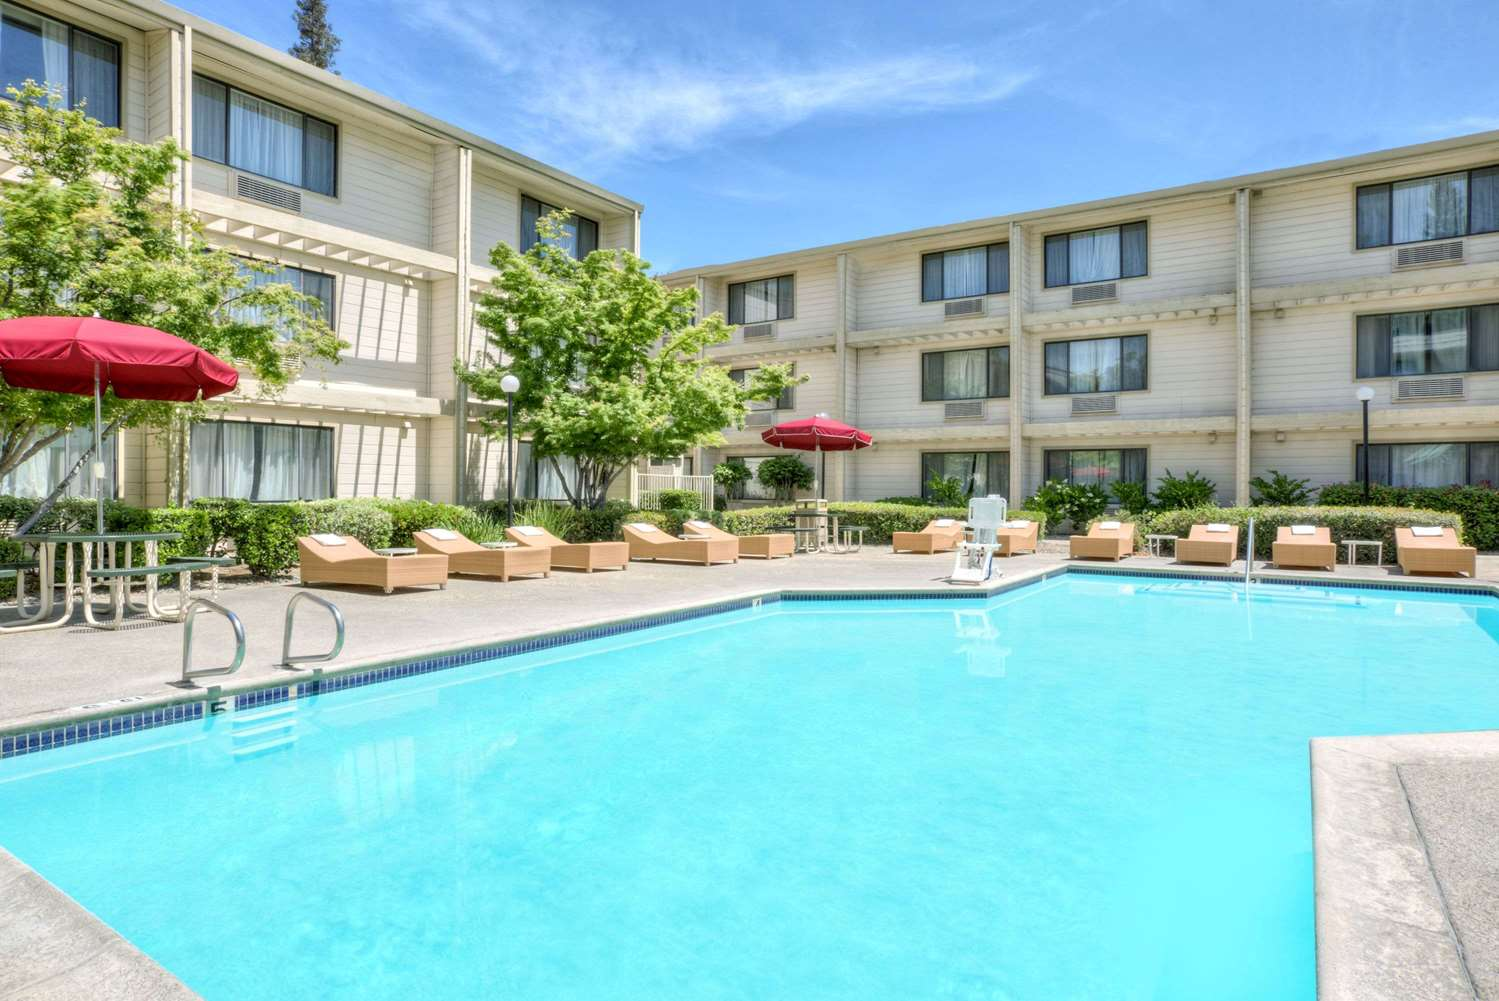 Pool - Hawthorn Suites by Wyndham Sacramento